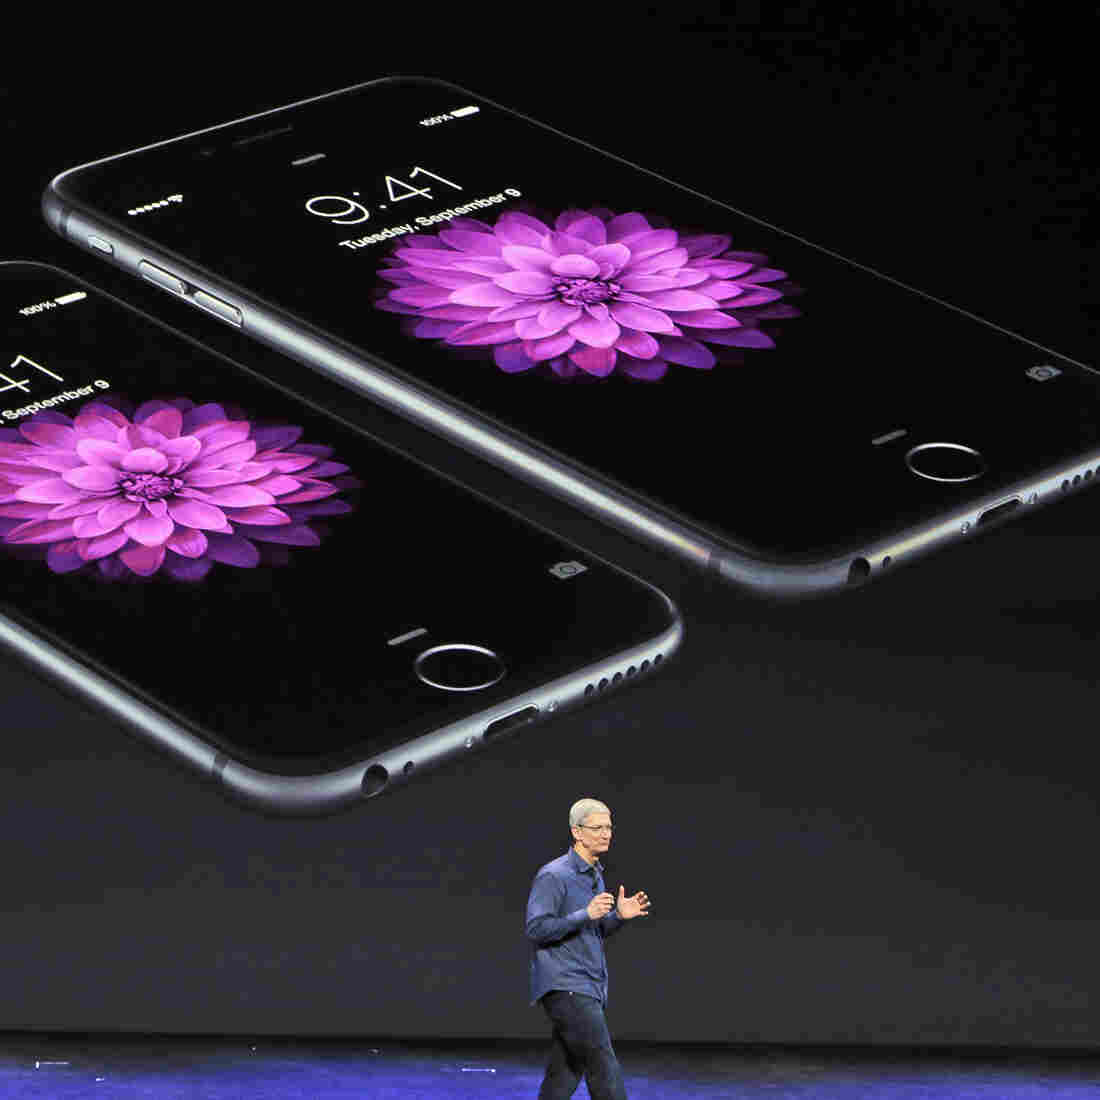 Apple CEO Tim Cook discusses the iPhone 6 and iPhone 6 Plus late last year.